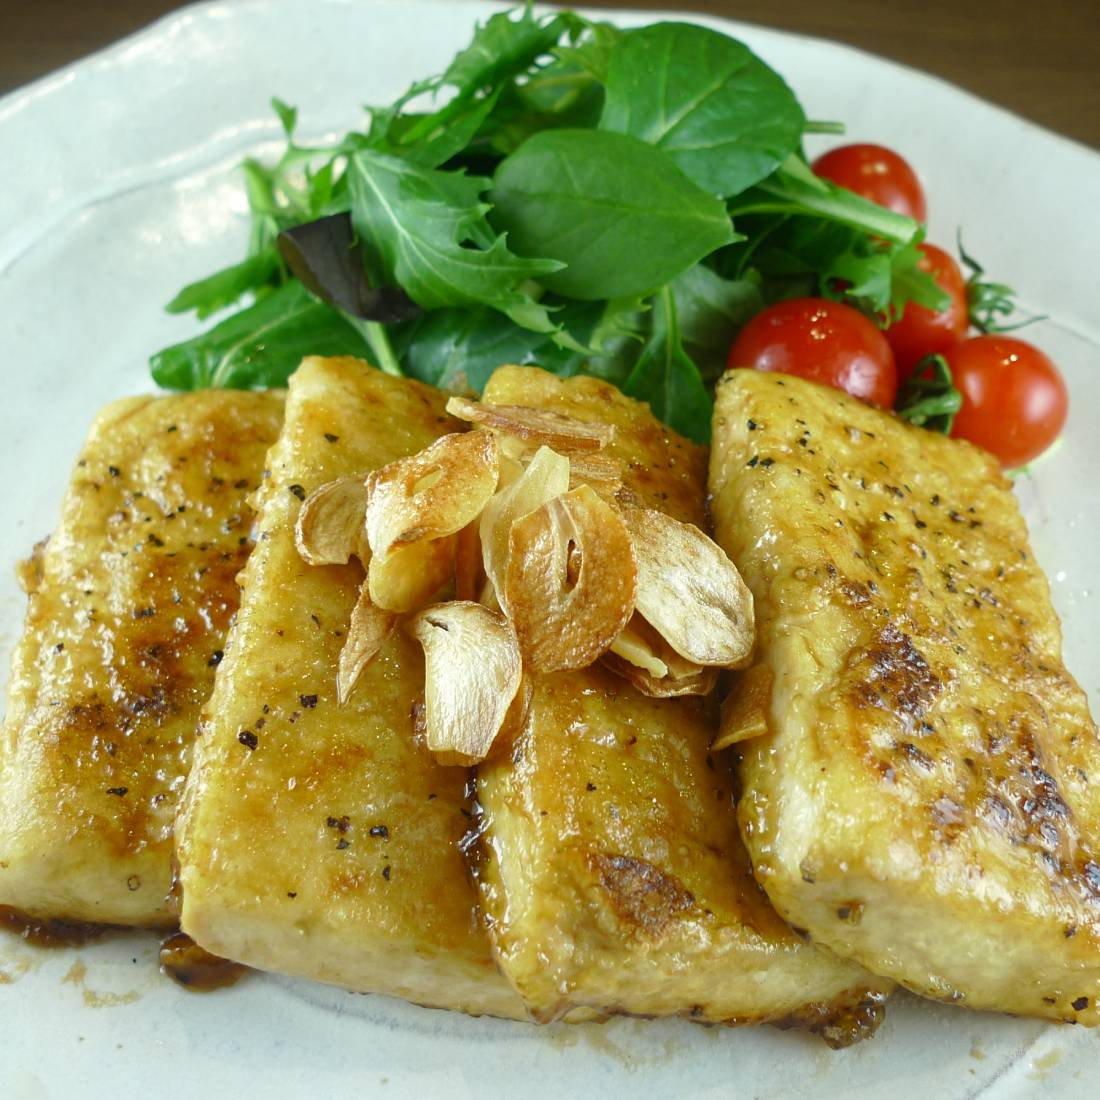 Tofu steaks